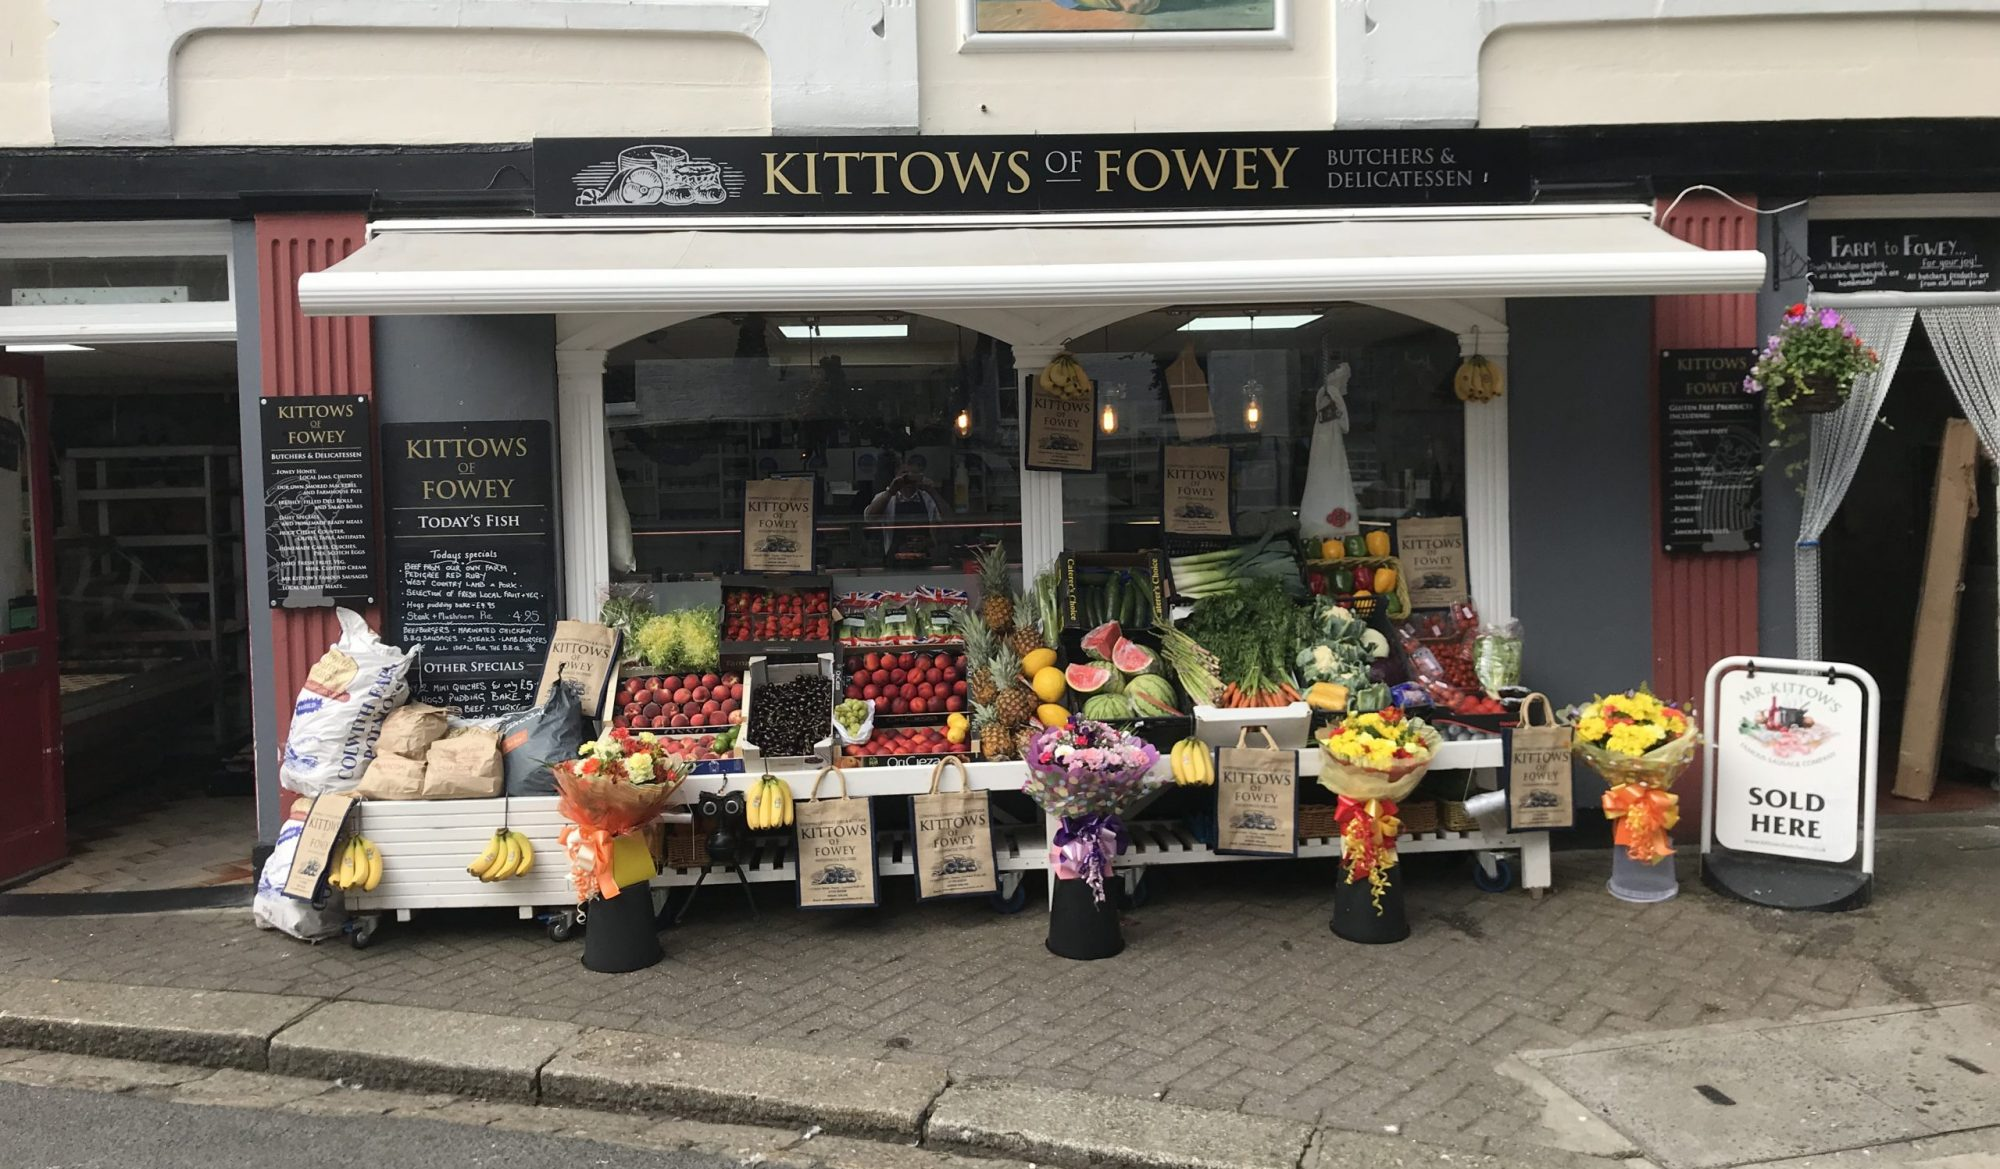 Kittows of Fowey